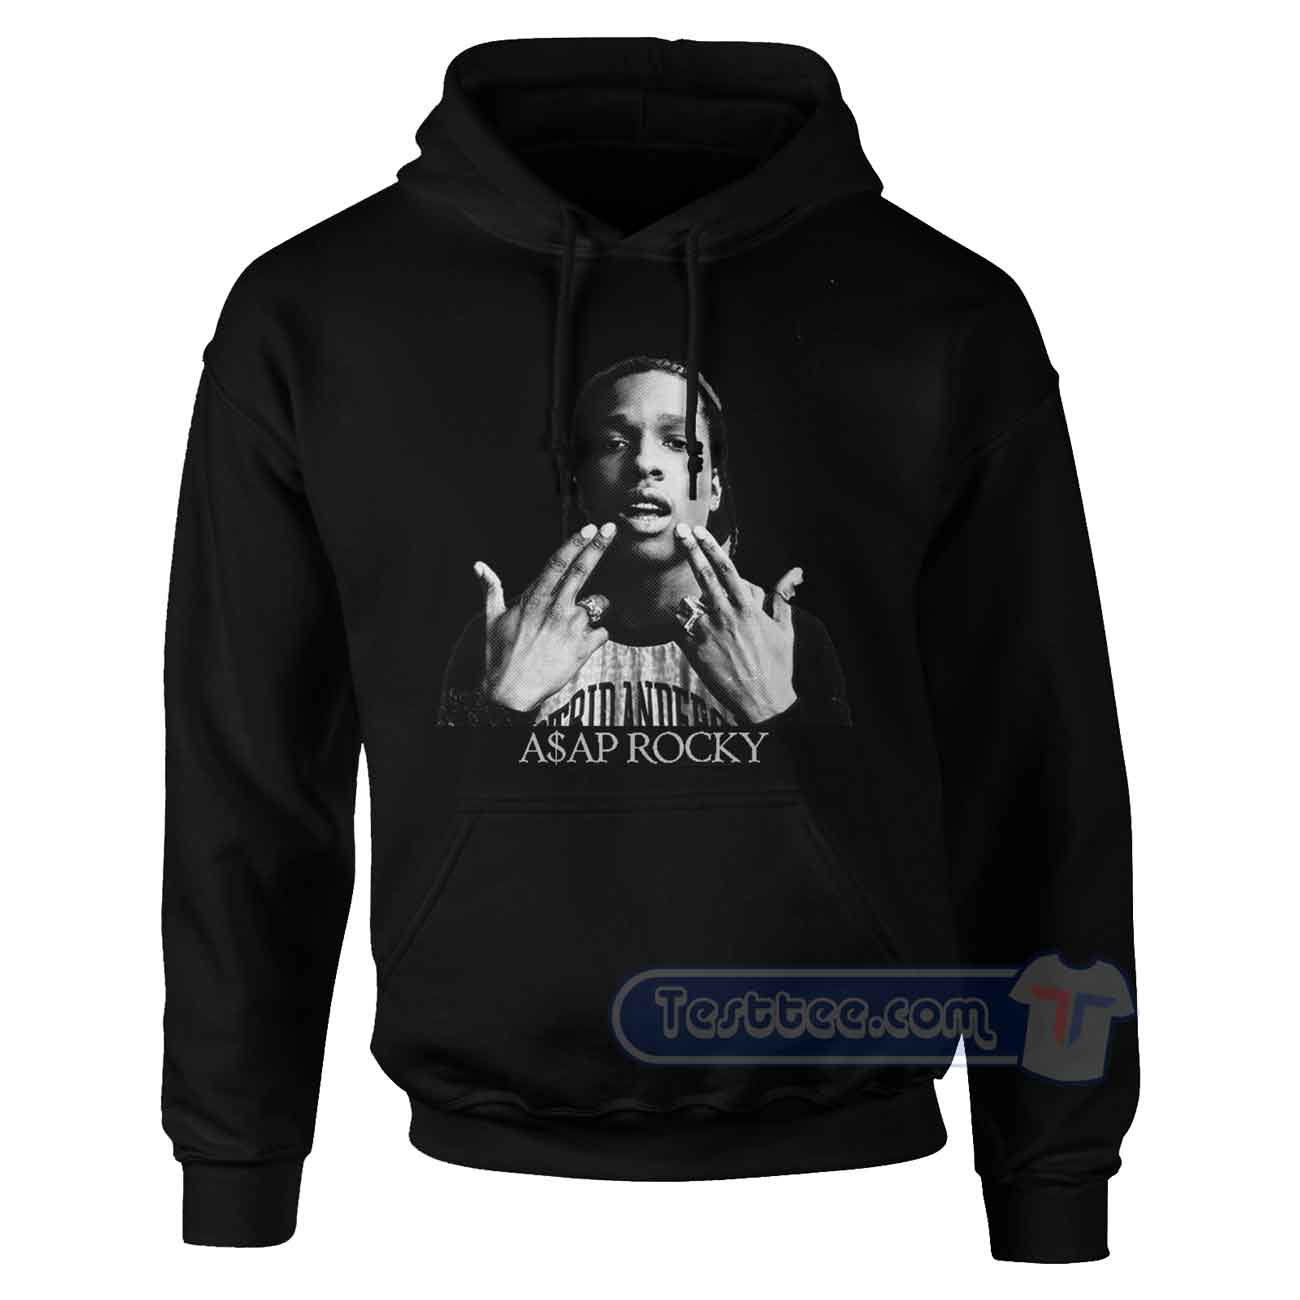 best online offer discounts on feet images of Asap Rocky Hoodie